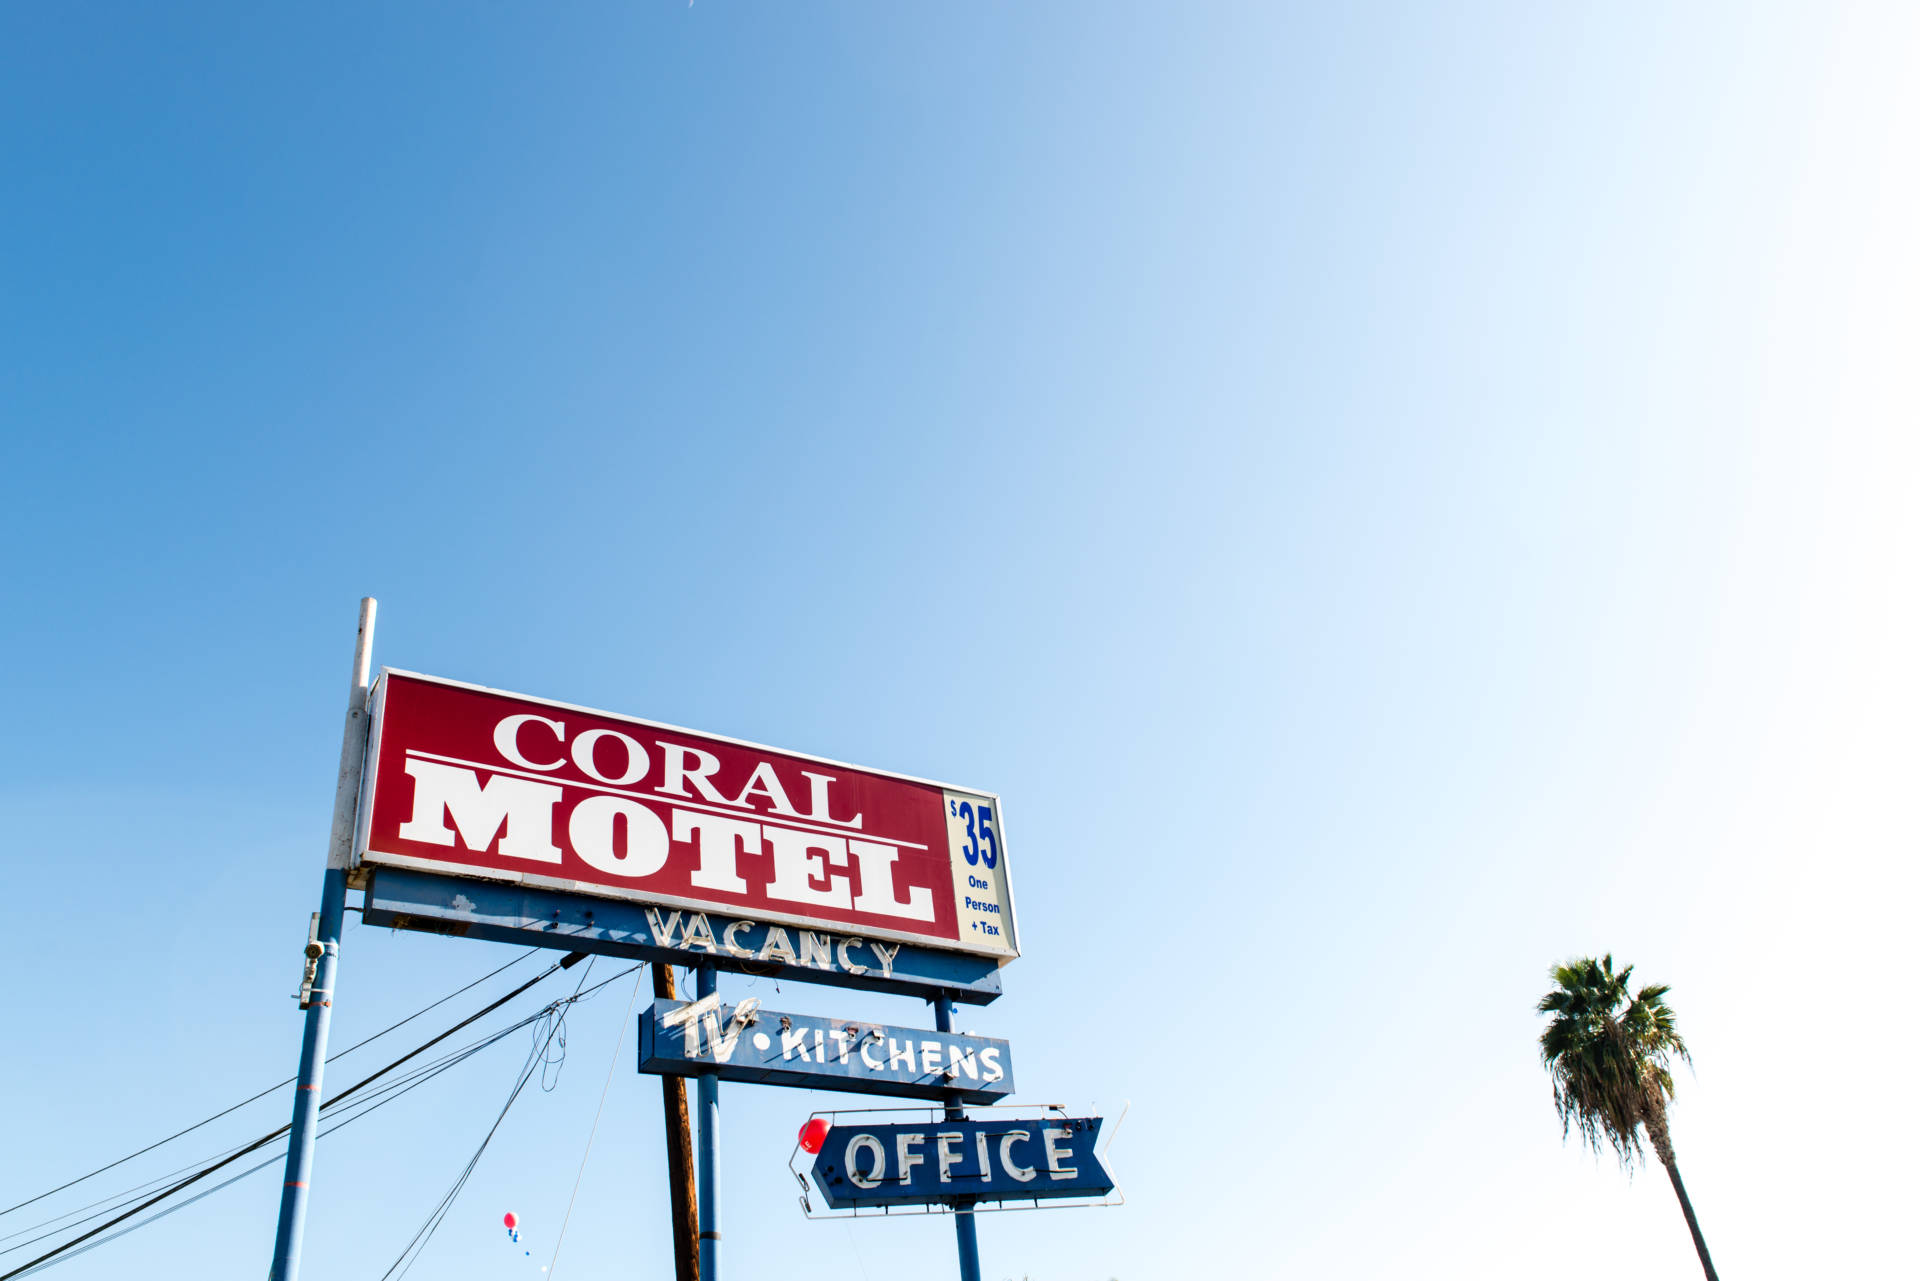 The Coral Motel in Buena Park, Calif., used by the Illumination Foundation Recuperative Care, serves as a respite for people needing a place to recover after being discharged from the hospital.